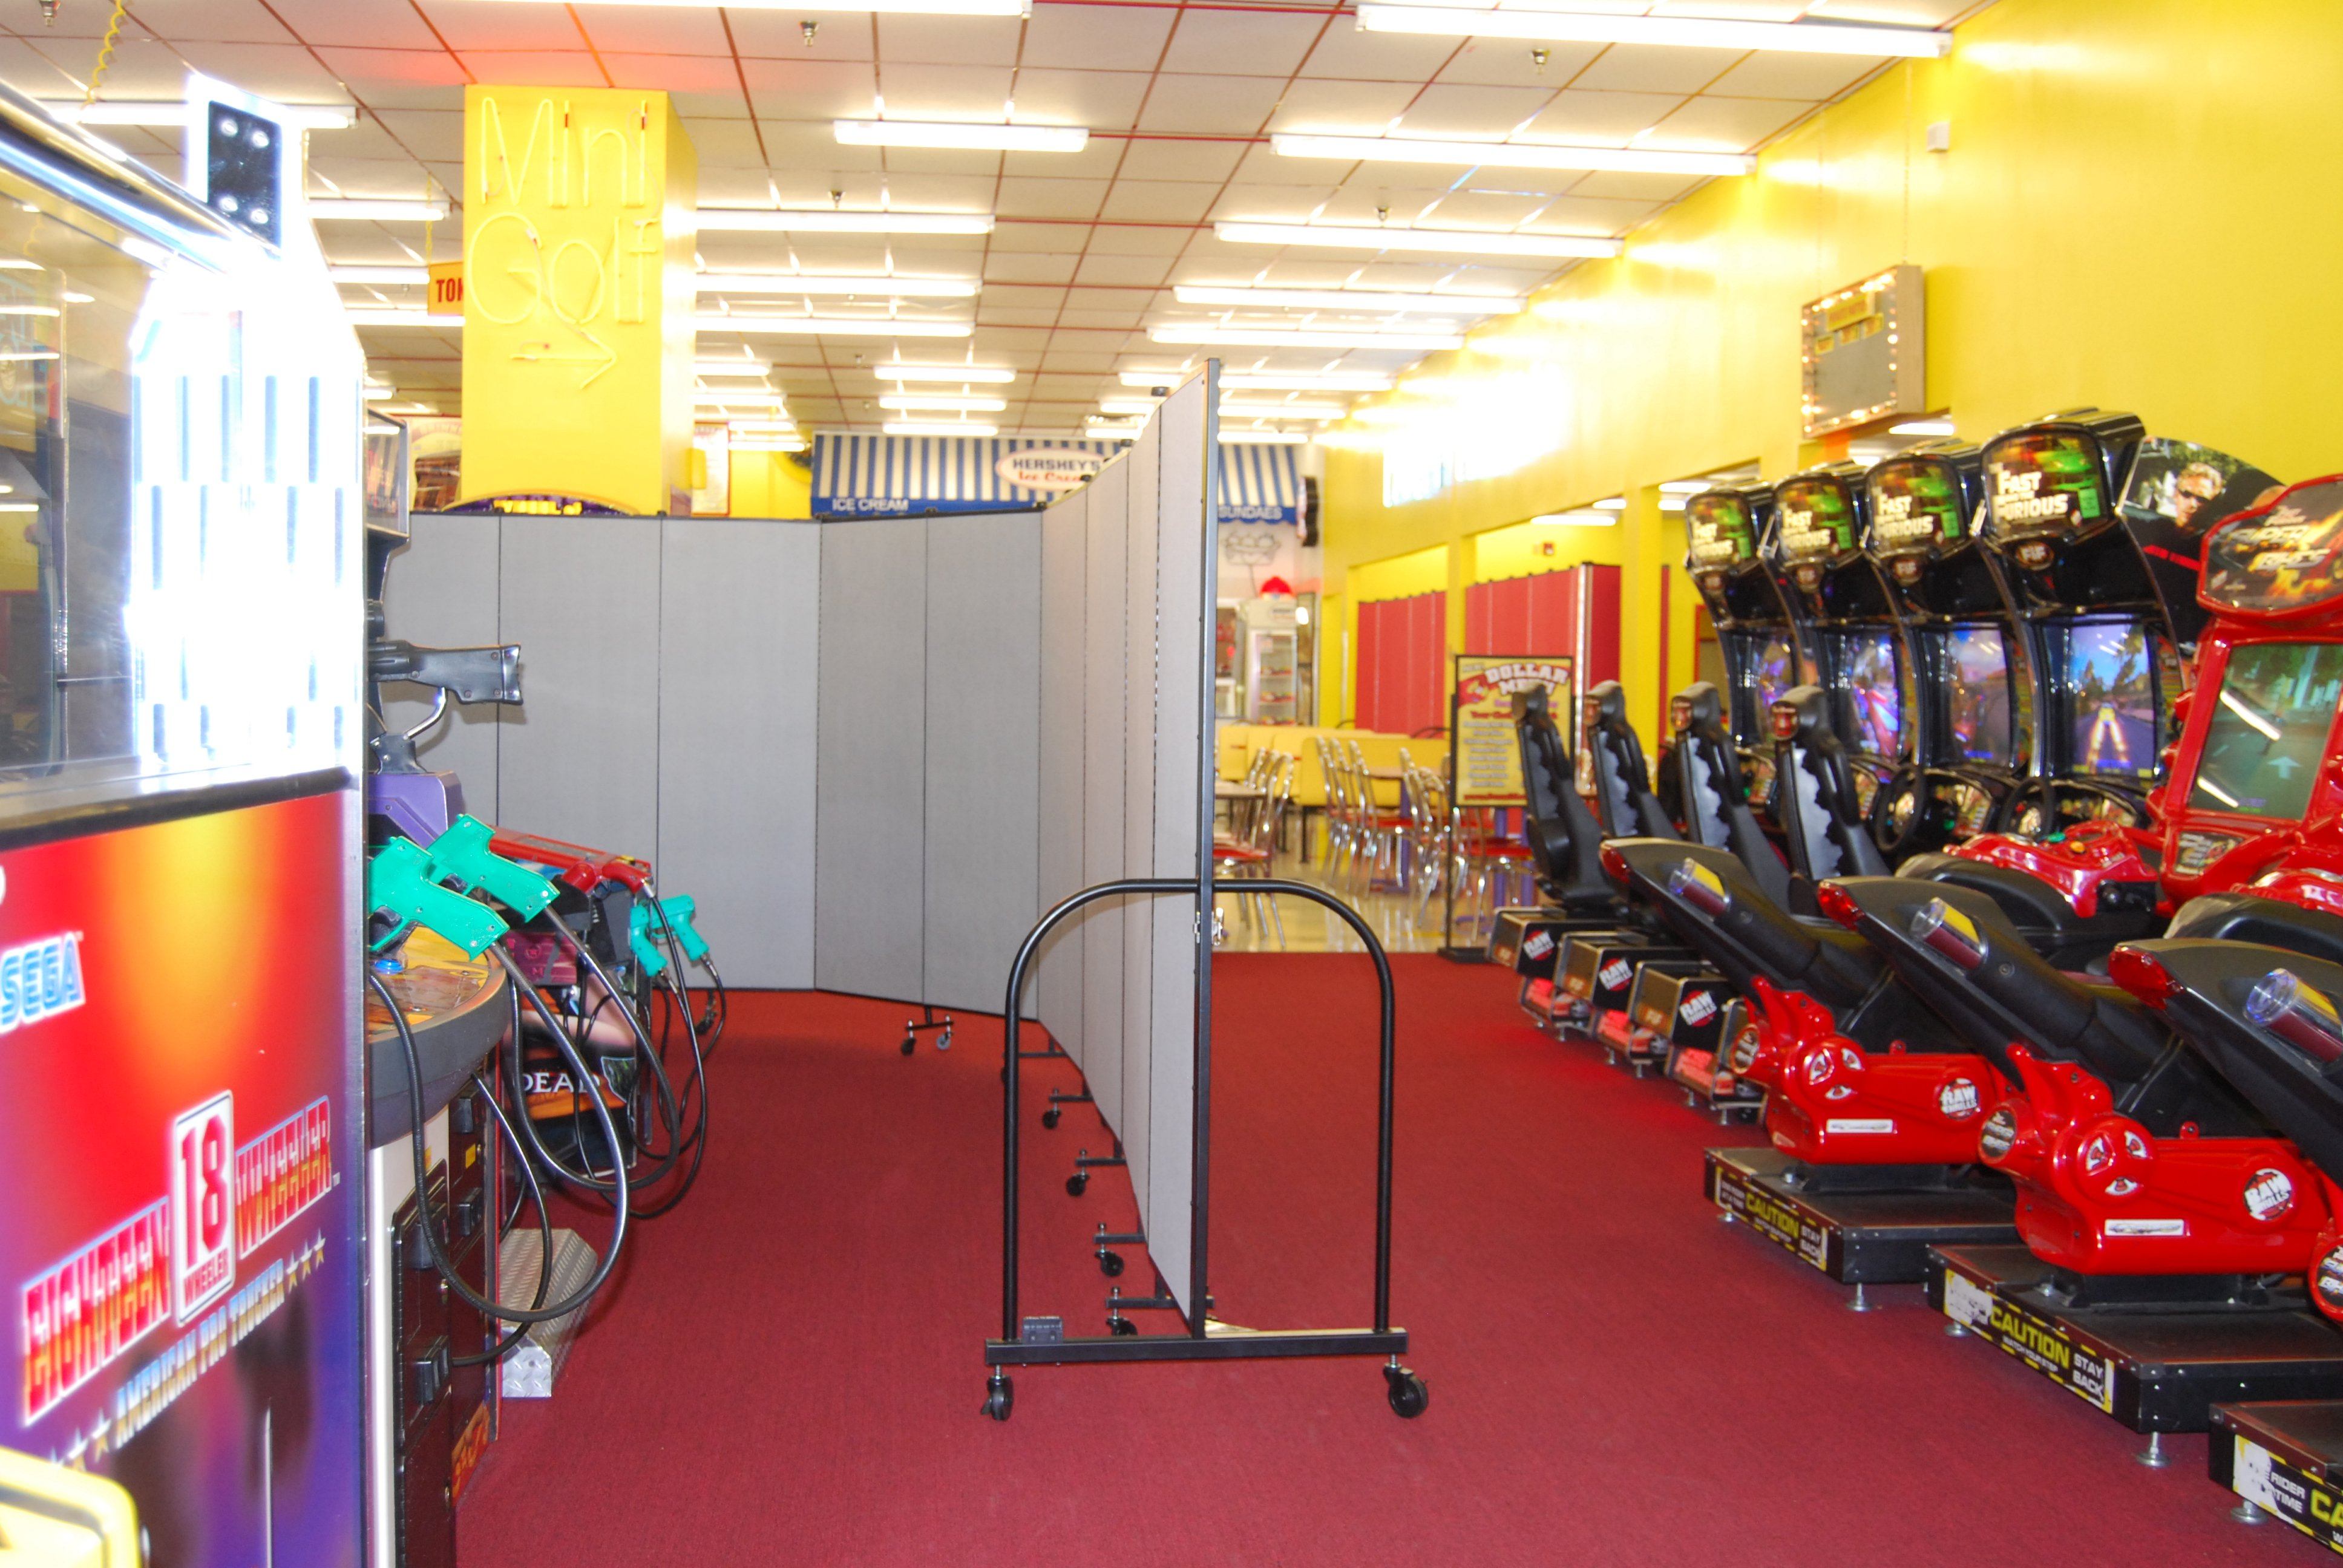 portable crowd control barrier at an indoor amusement park to separate games from dining area.